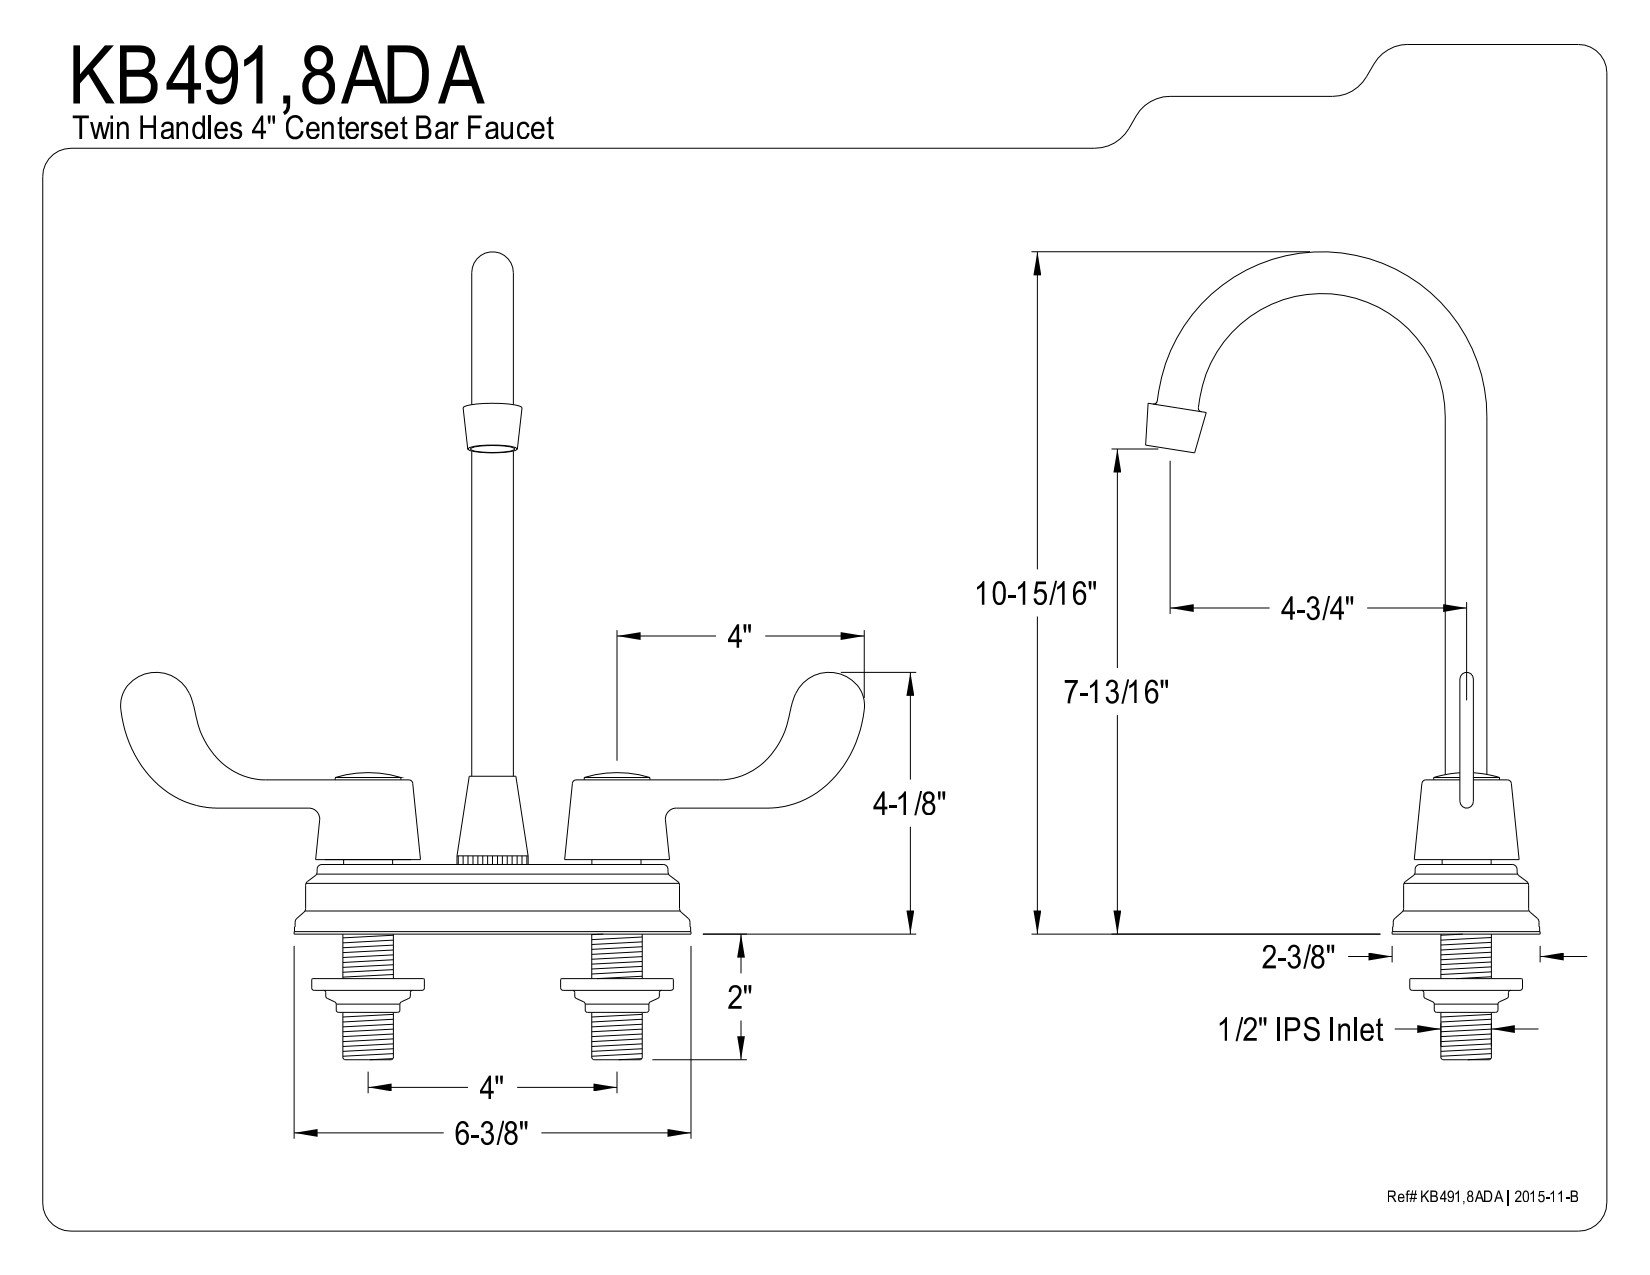 Kingston Brass 1062510 Magellan 4'' Center Bar Faucet with Ada Blade Handle, 4-3/4'', Polished Chrome by Kingston Brass (Image #2)